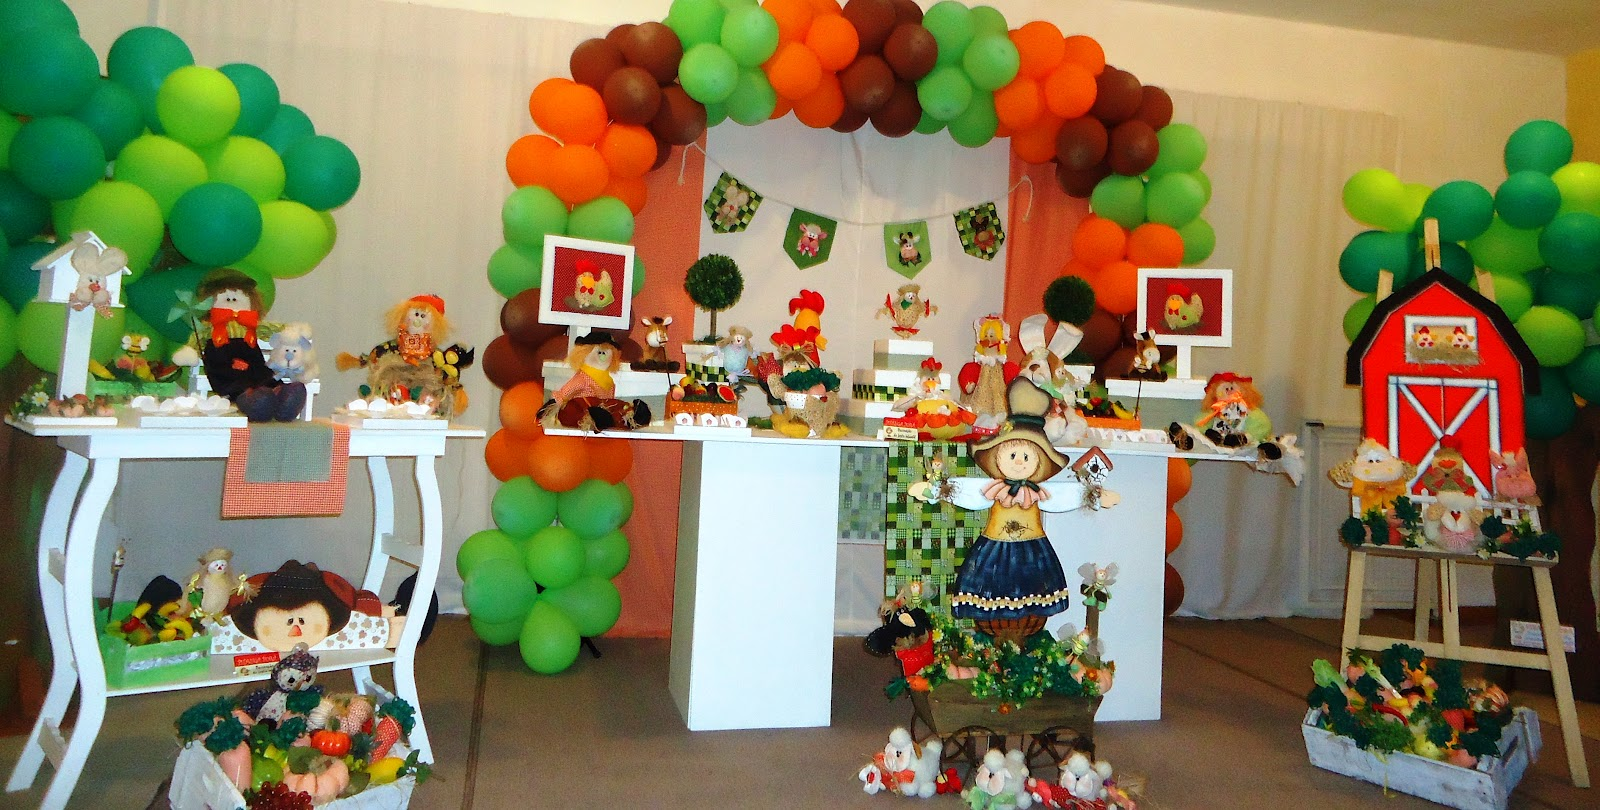 DE FESTA INFANTIL source httppitangapora09blogspotcom